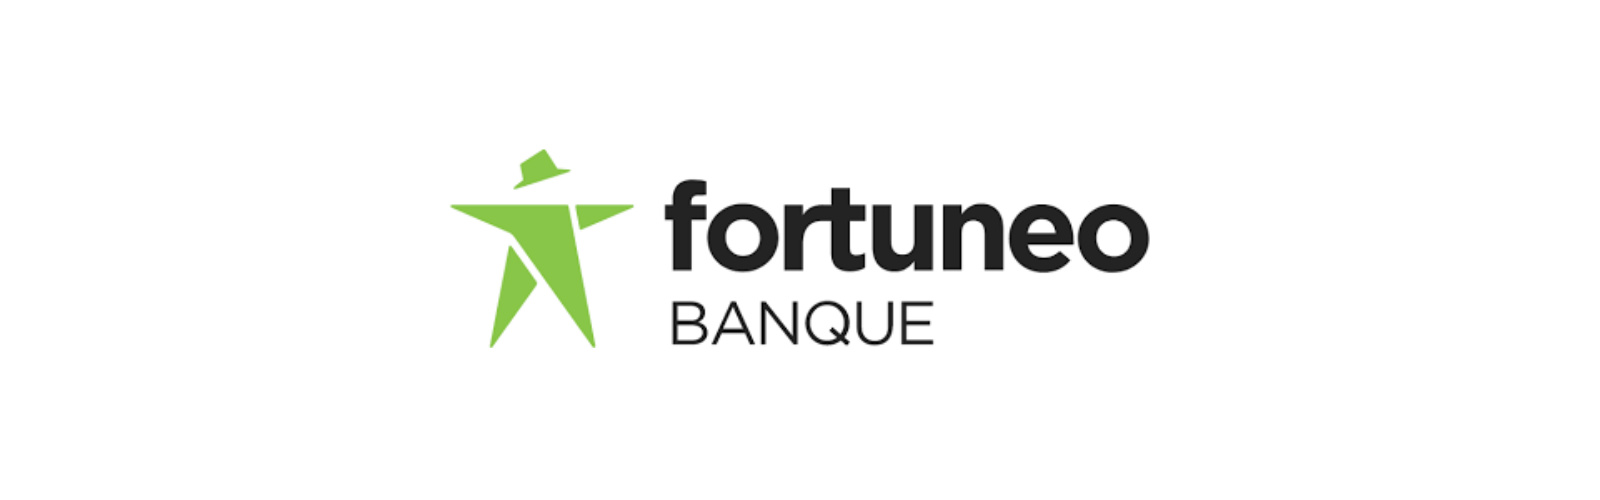 fortuneo banque banque en ligne bonus avis wannawin. Black Bedroom Furniture Sets. Home Design Ideas